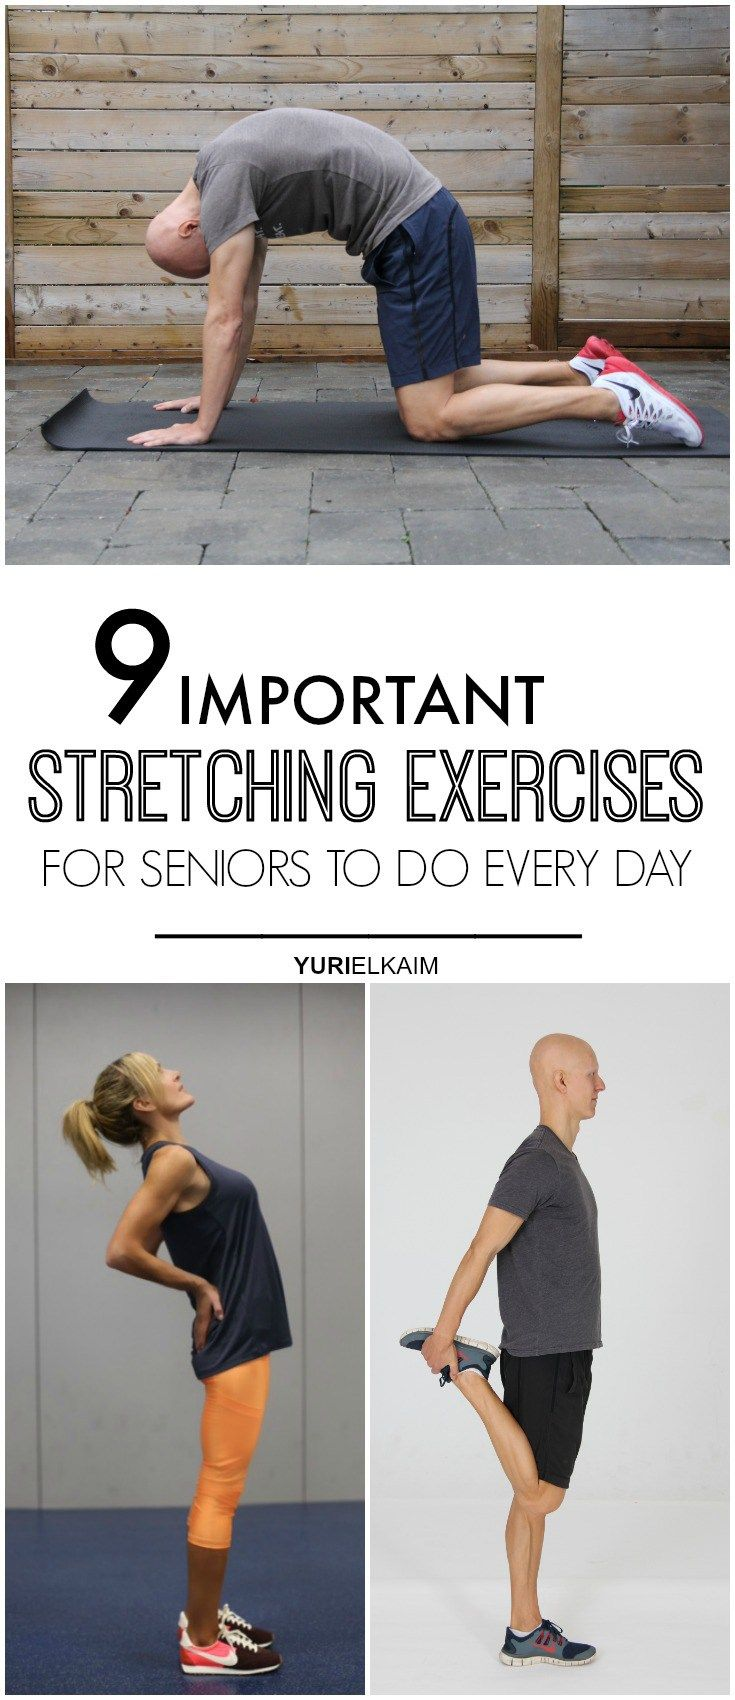 Studies have shown that with age, flexibility decreases by up to 50 percent in some joints. So if you're looking to gain more mobility and flexibility (which can help ward off falls and other injuries), stretching will be your new best friend. Here are 9 important stretches you should work into your daily routine. | Yuri Elkaim